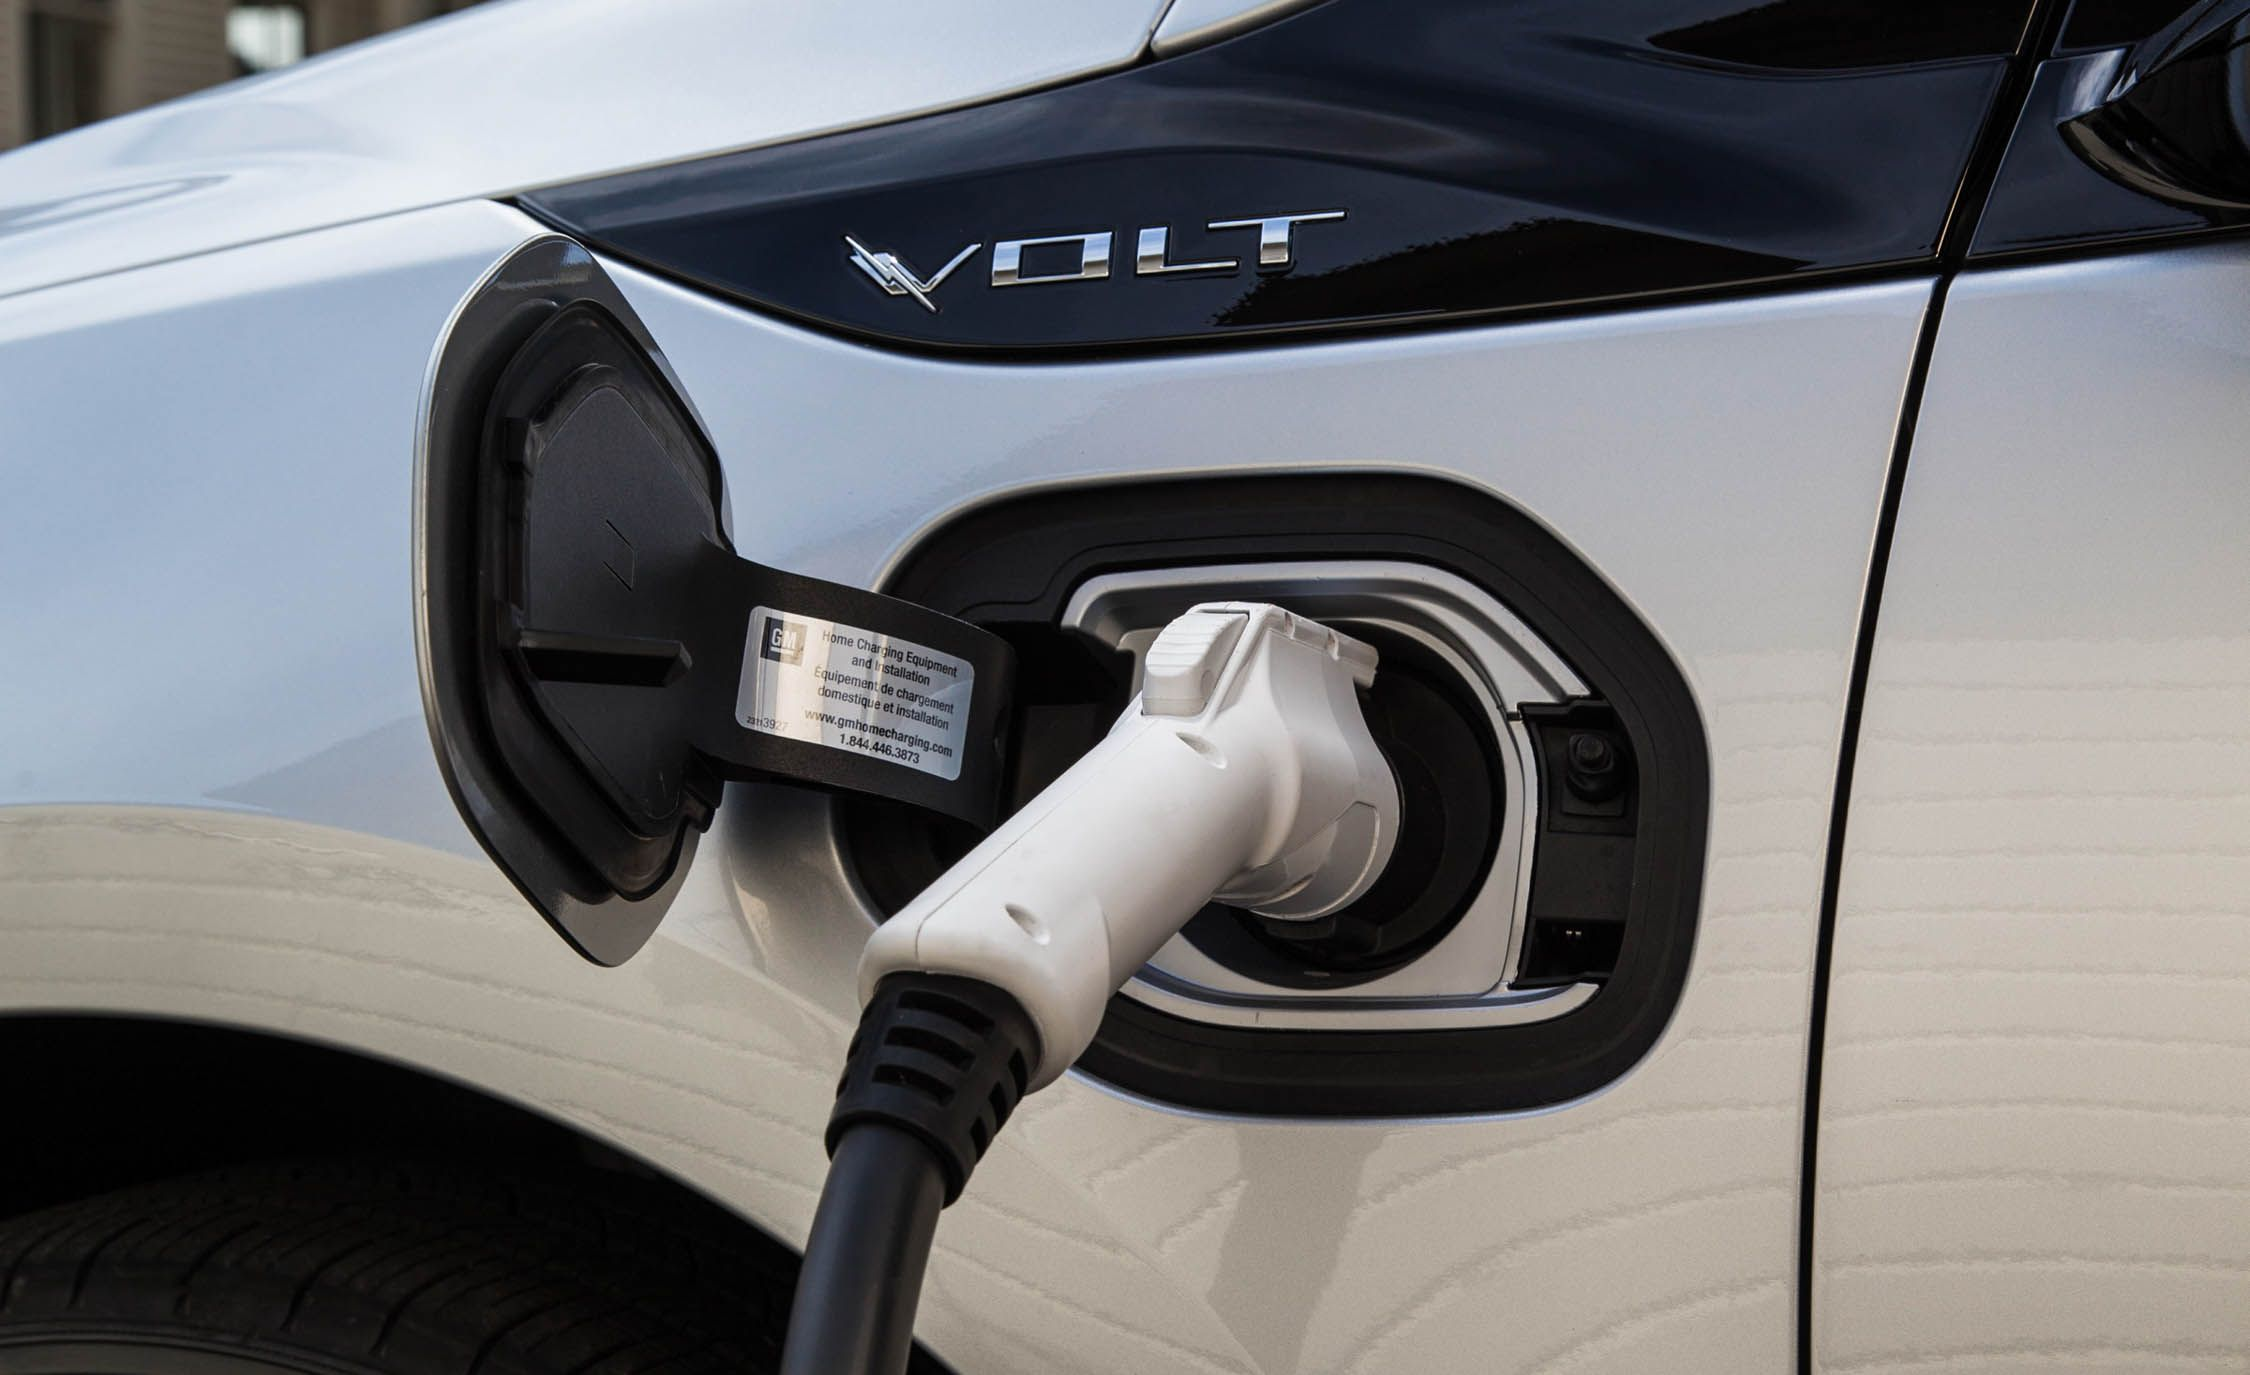 2019 Chevrolet Volt Slashes Recharging Time By Half